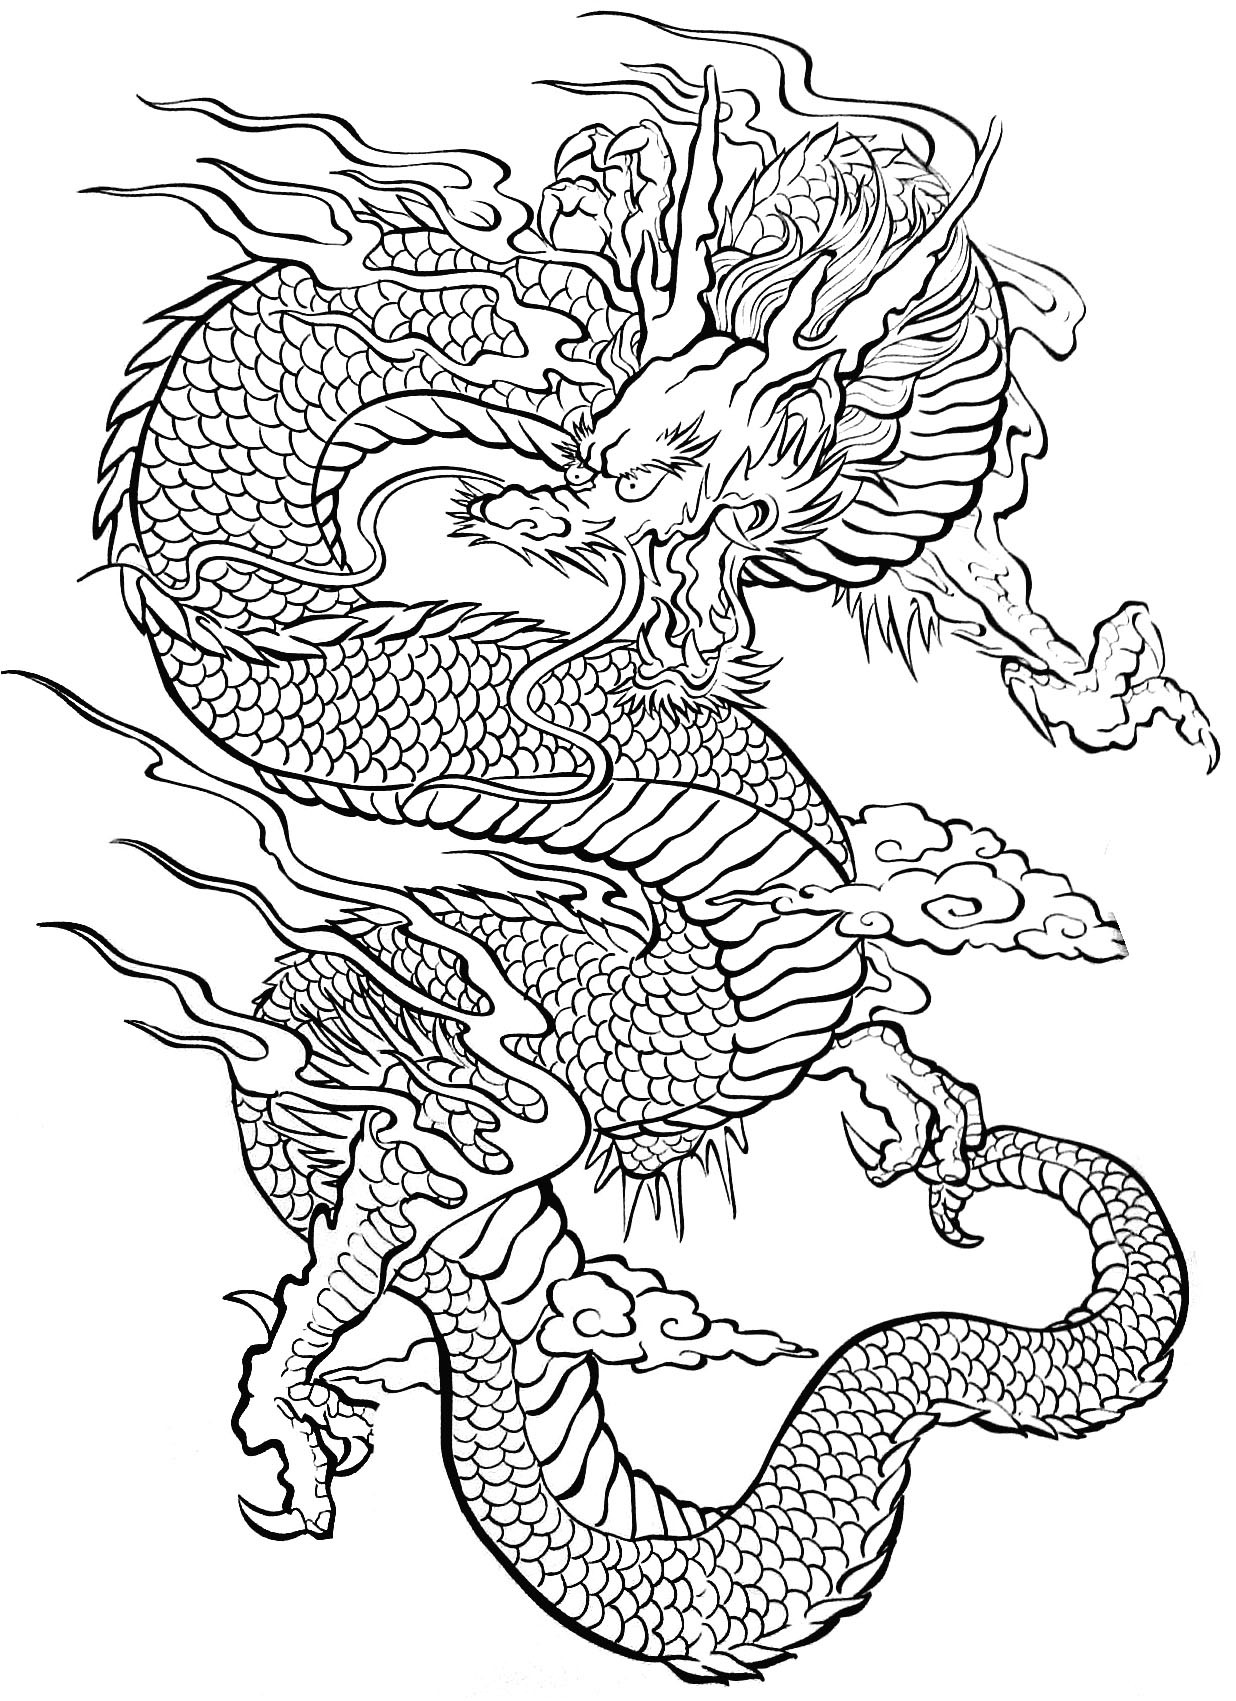 1236x1701 Chinese Dragon Coloring Pages Printable Free Animals Face To Print